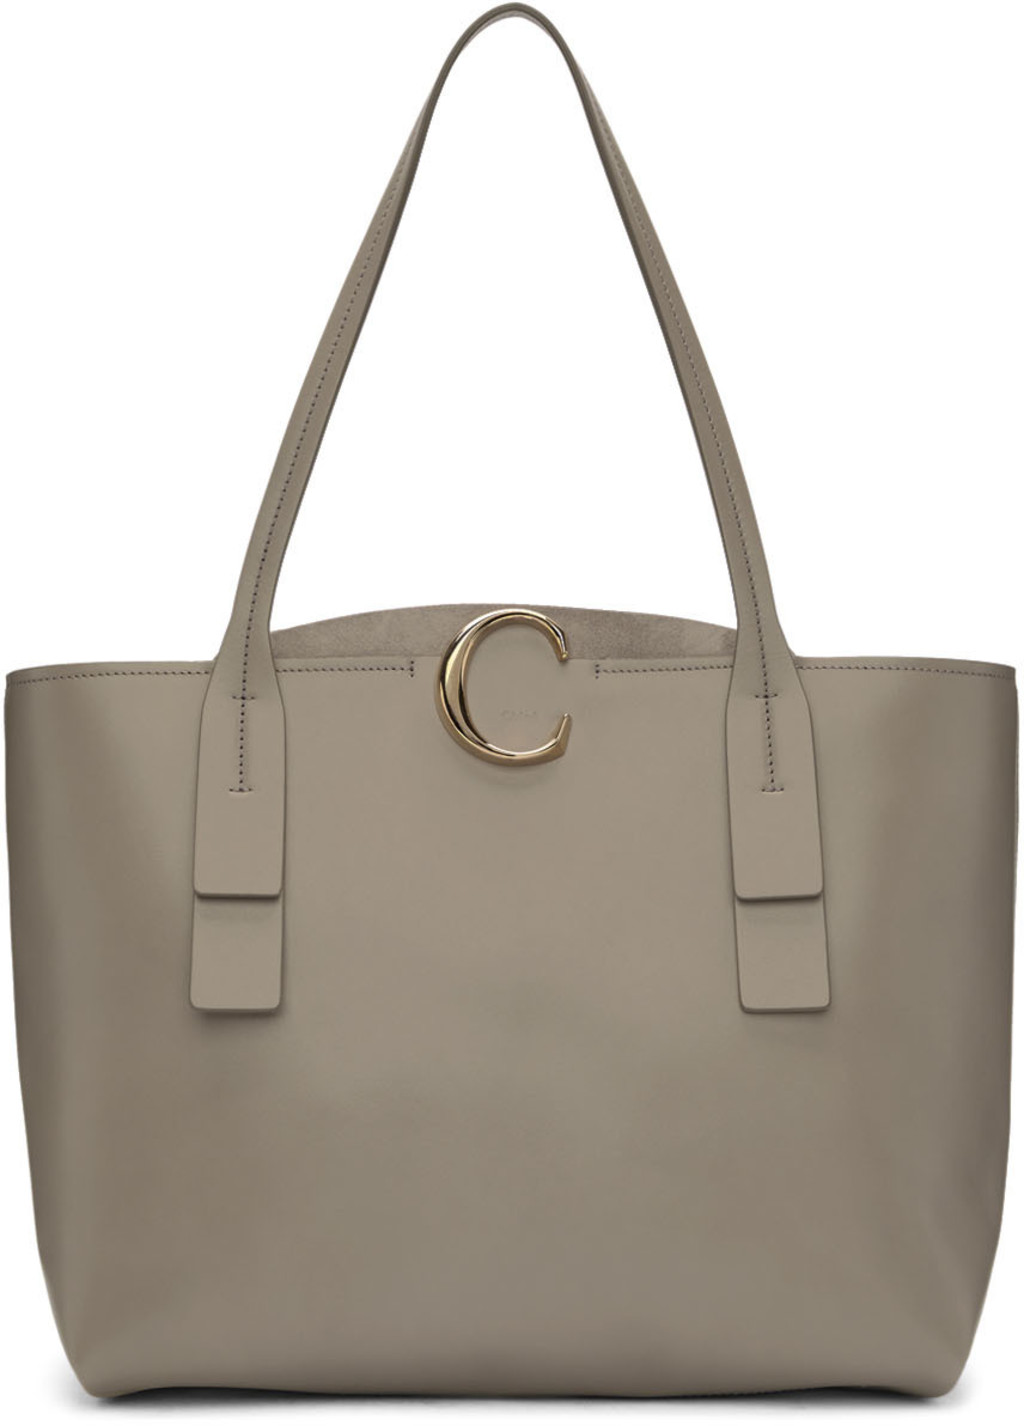 0b5081bcdf Grey Medium 'Chloe C' Tote